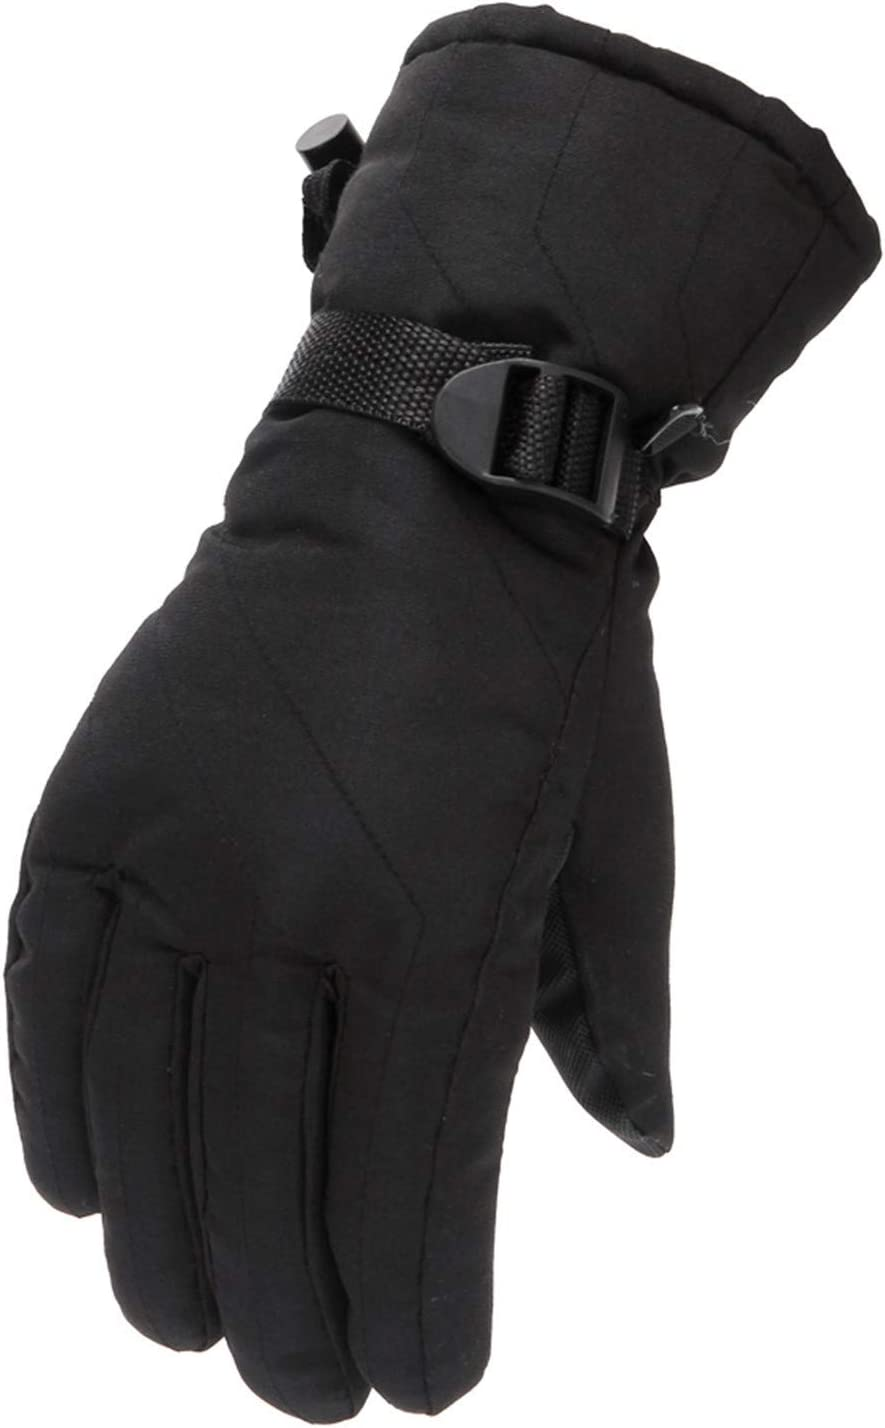 Ski & Snow Gloves Winter Insulated Warm Gloves for Boys Grils Outdoor Snowboarding Snowmobile Gloves -30°F Thermal Gloves